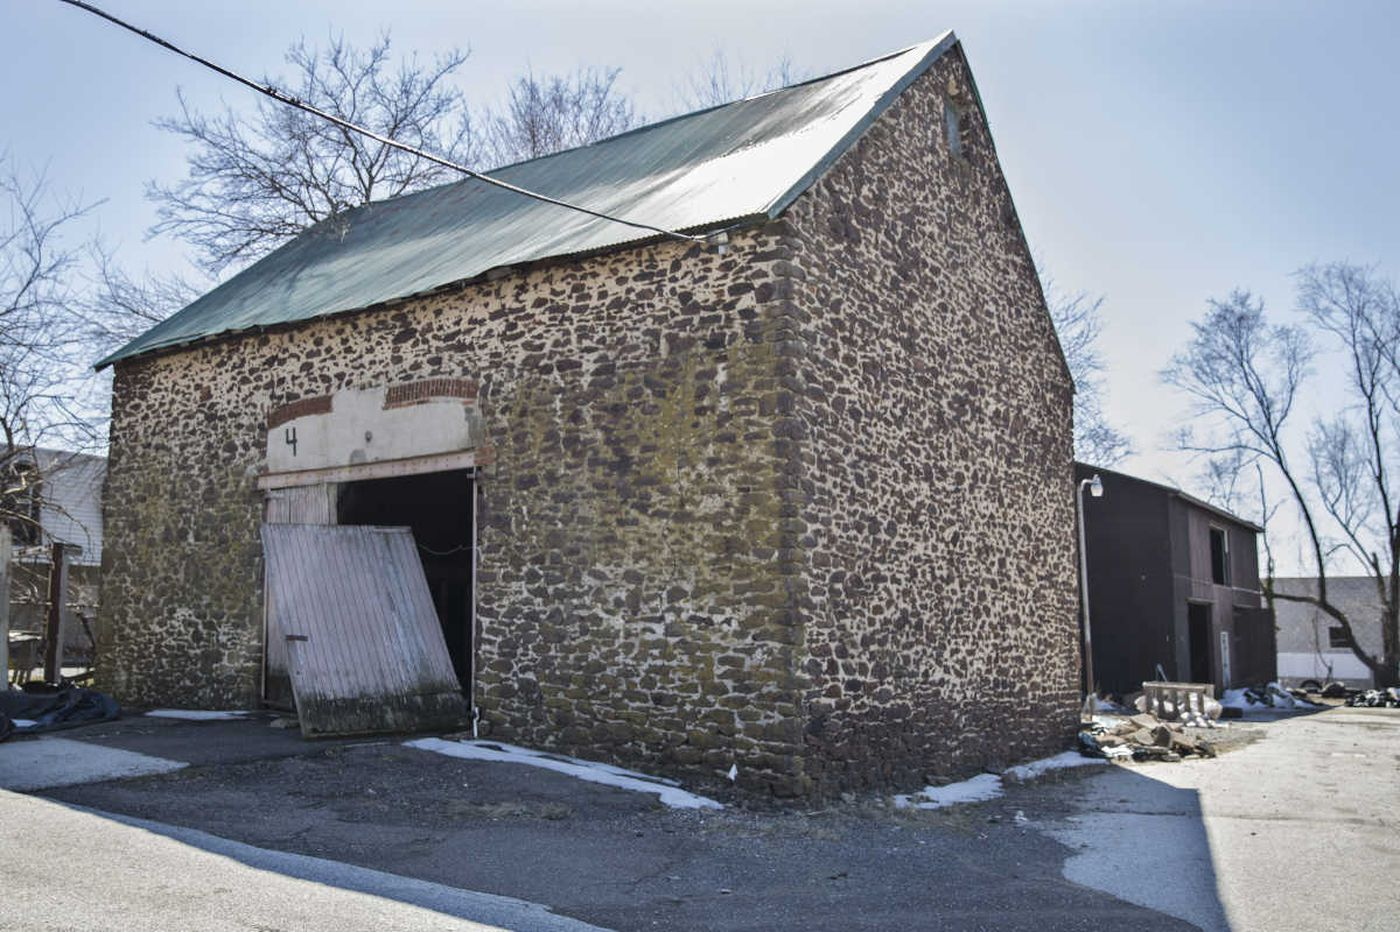 Alarm spurs action as South Jersey's historic buildings vanish one by one